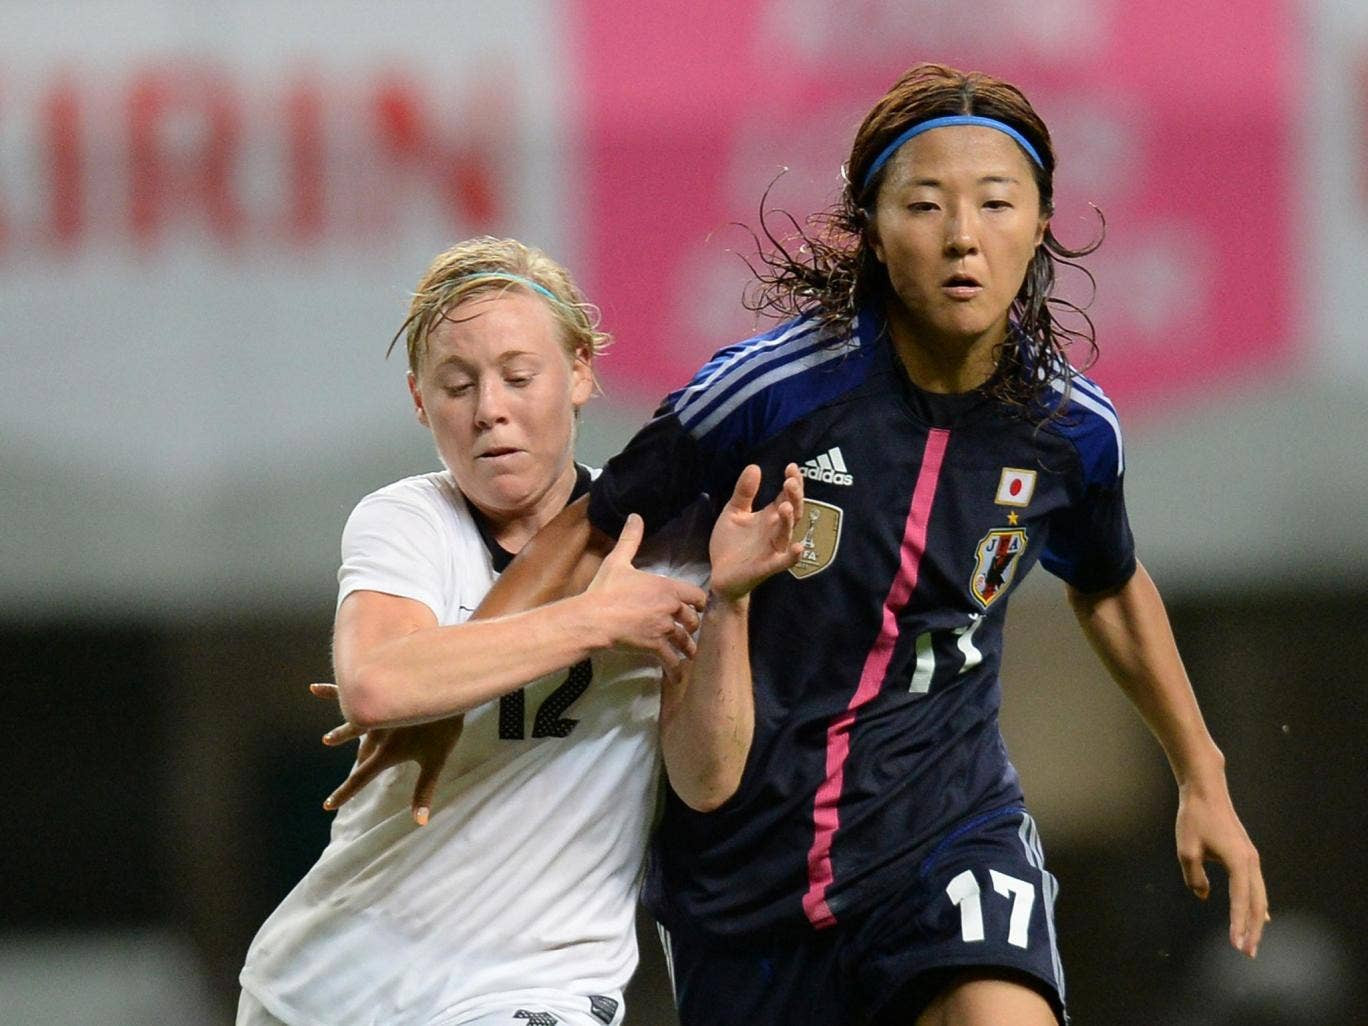 New Zealand's Betsy Hassett (left) has signed for Manchester City, while World Cup-winner Yuki Ogimi will play for Chelsea in this season's Women's Super League